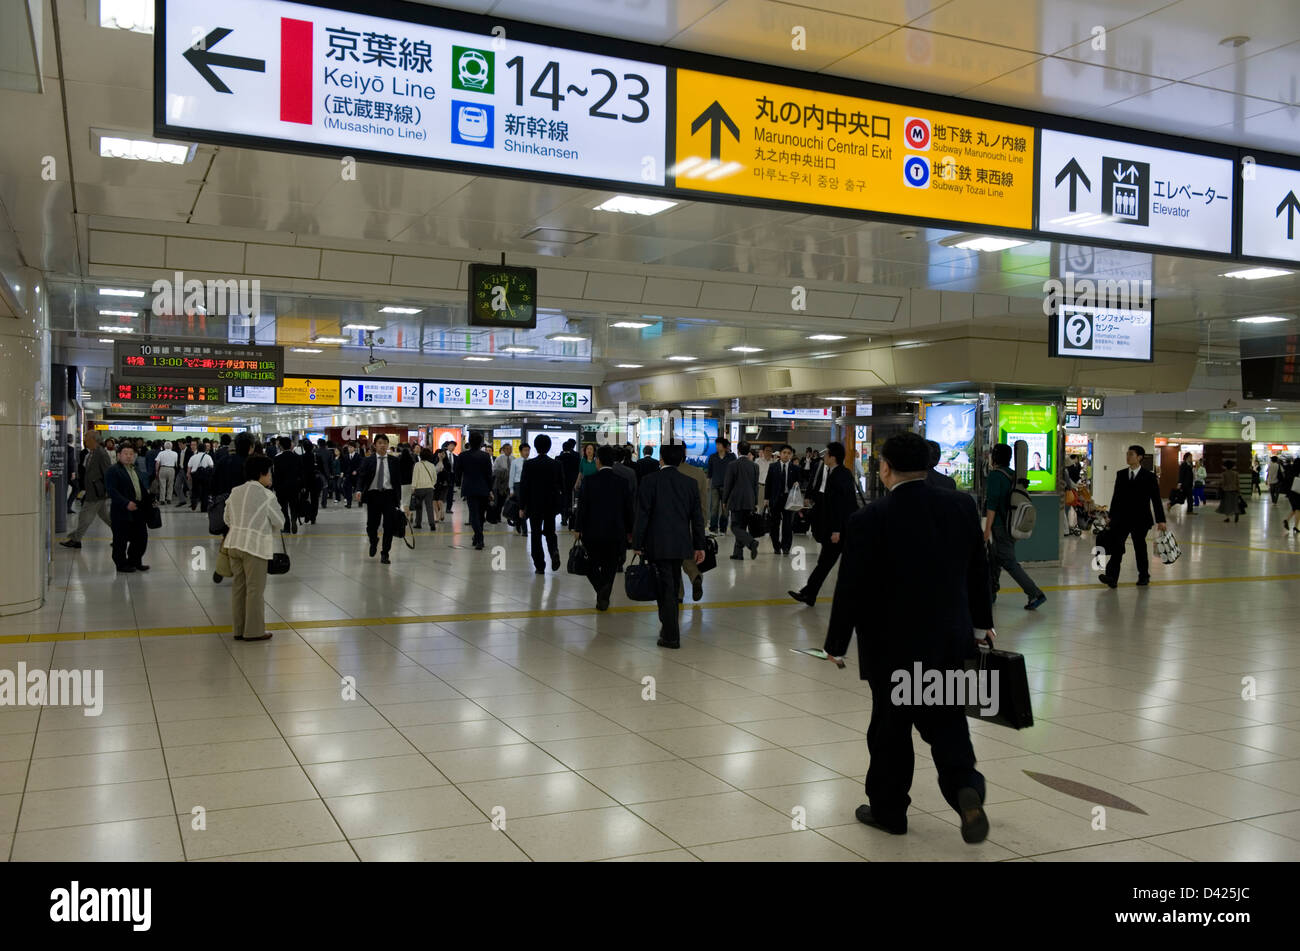 People coming, going and passing through one of many underground levels inside Tokyo train station. - Stock Image